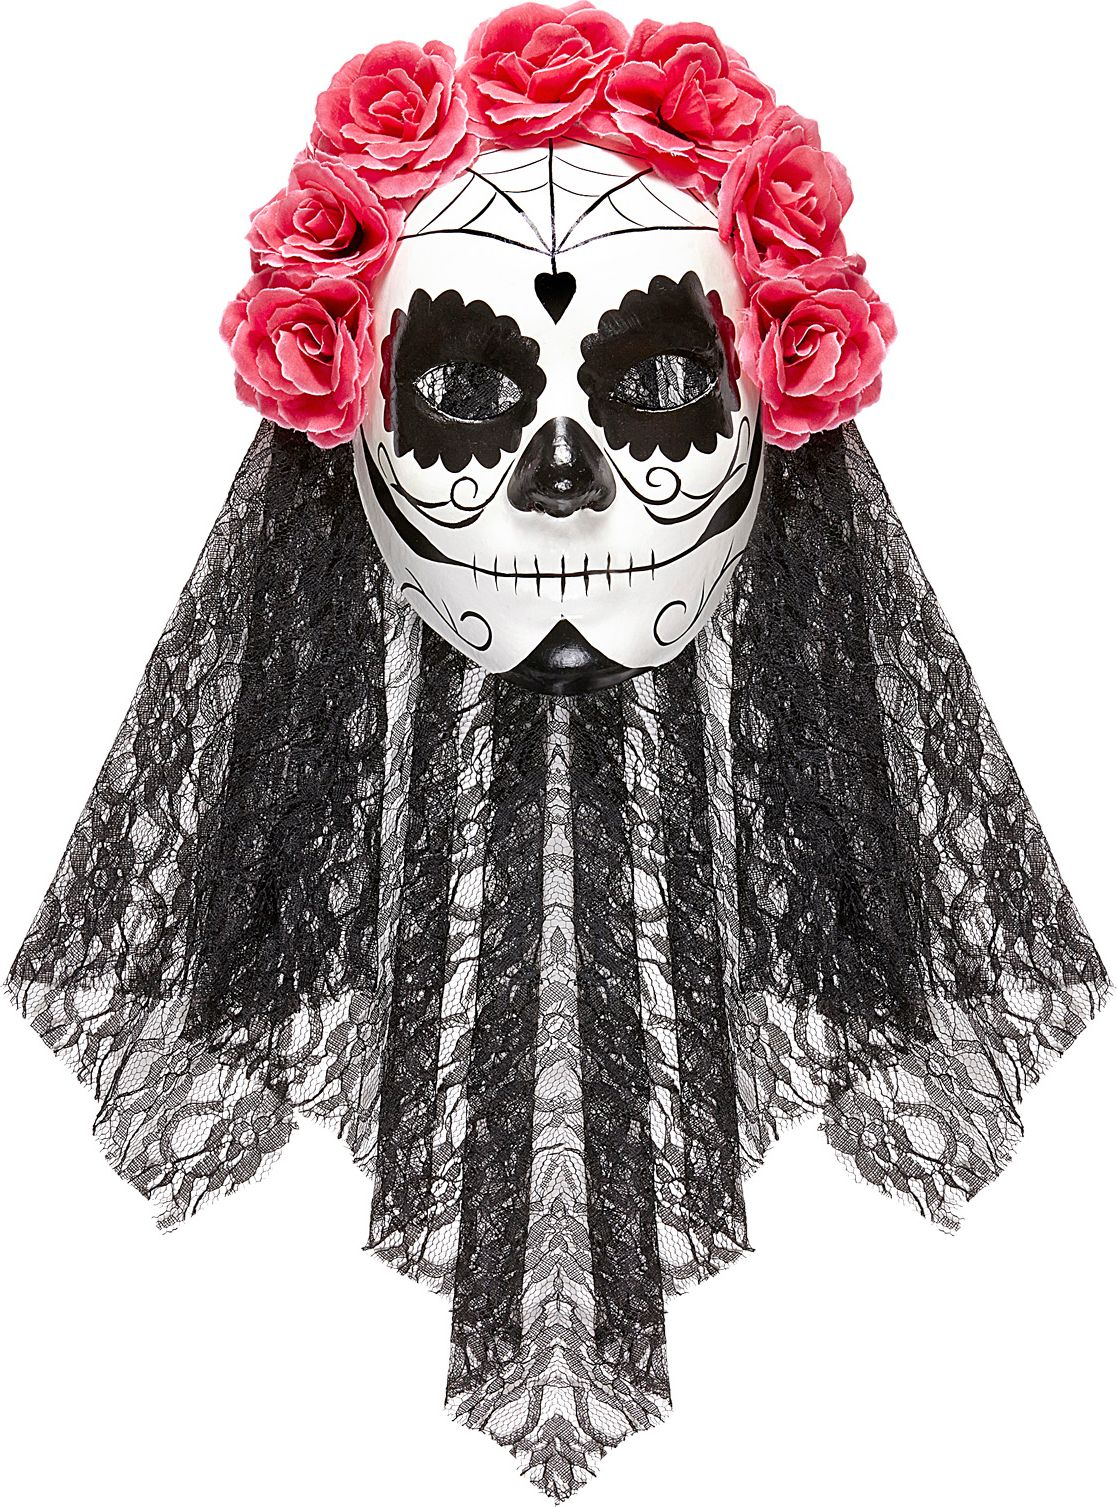 Roze zwart day of the dead masker met sluier